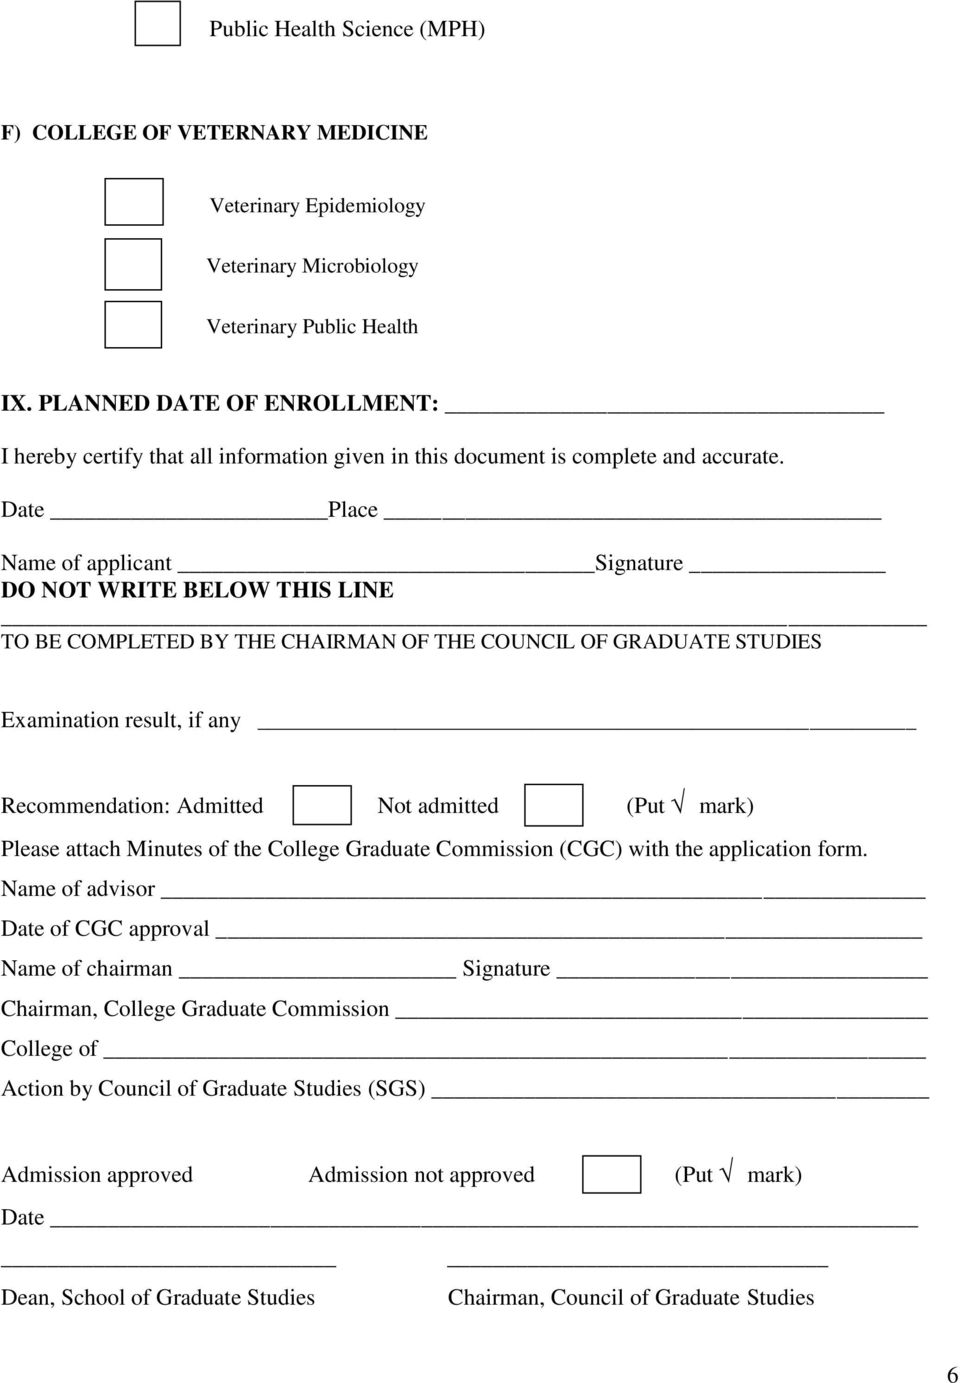 APPLICATION FOR ADMISSION OF GRADUATE STUDY - PDF